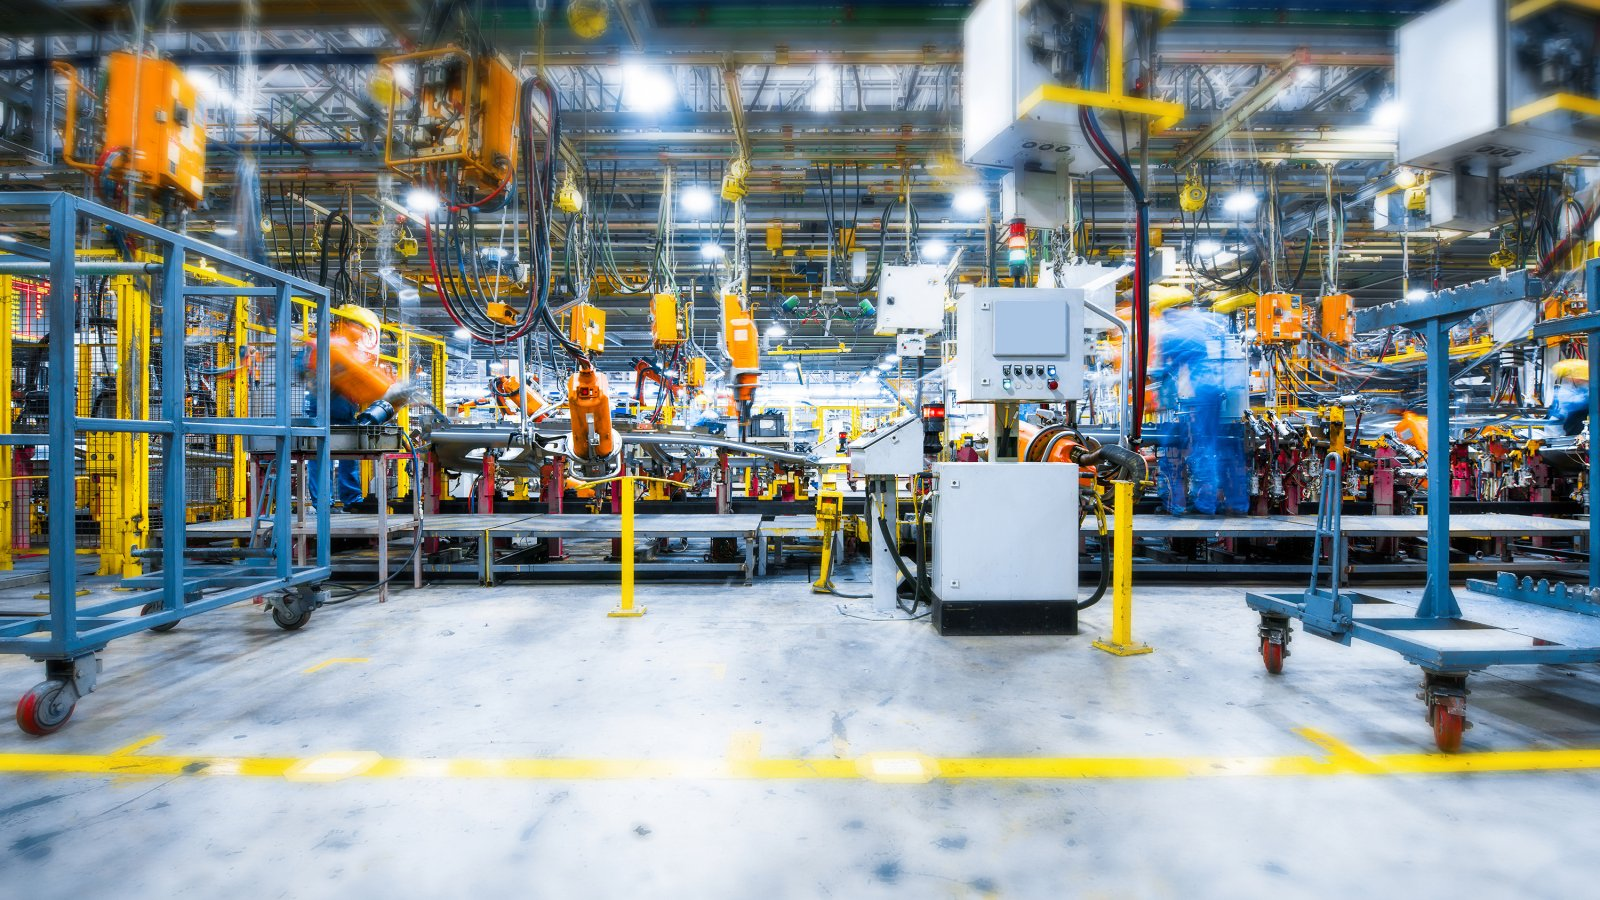 Manufacturing, Distribution & Supply Chain